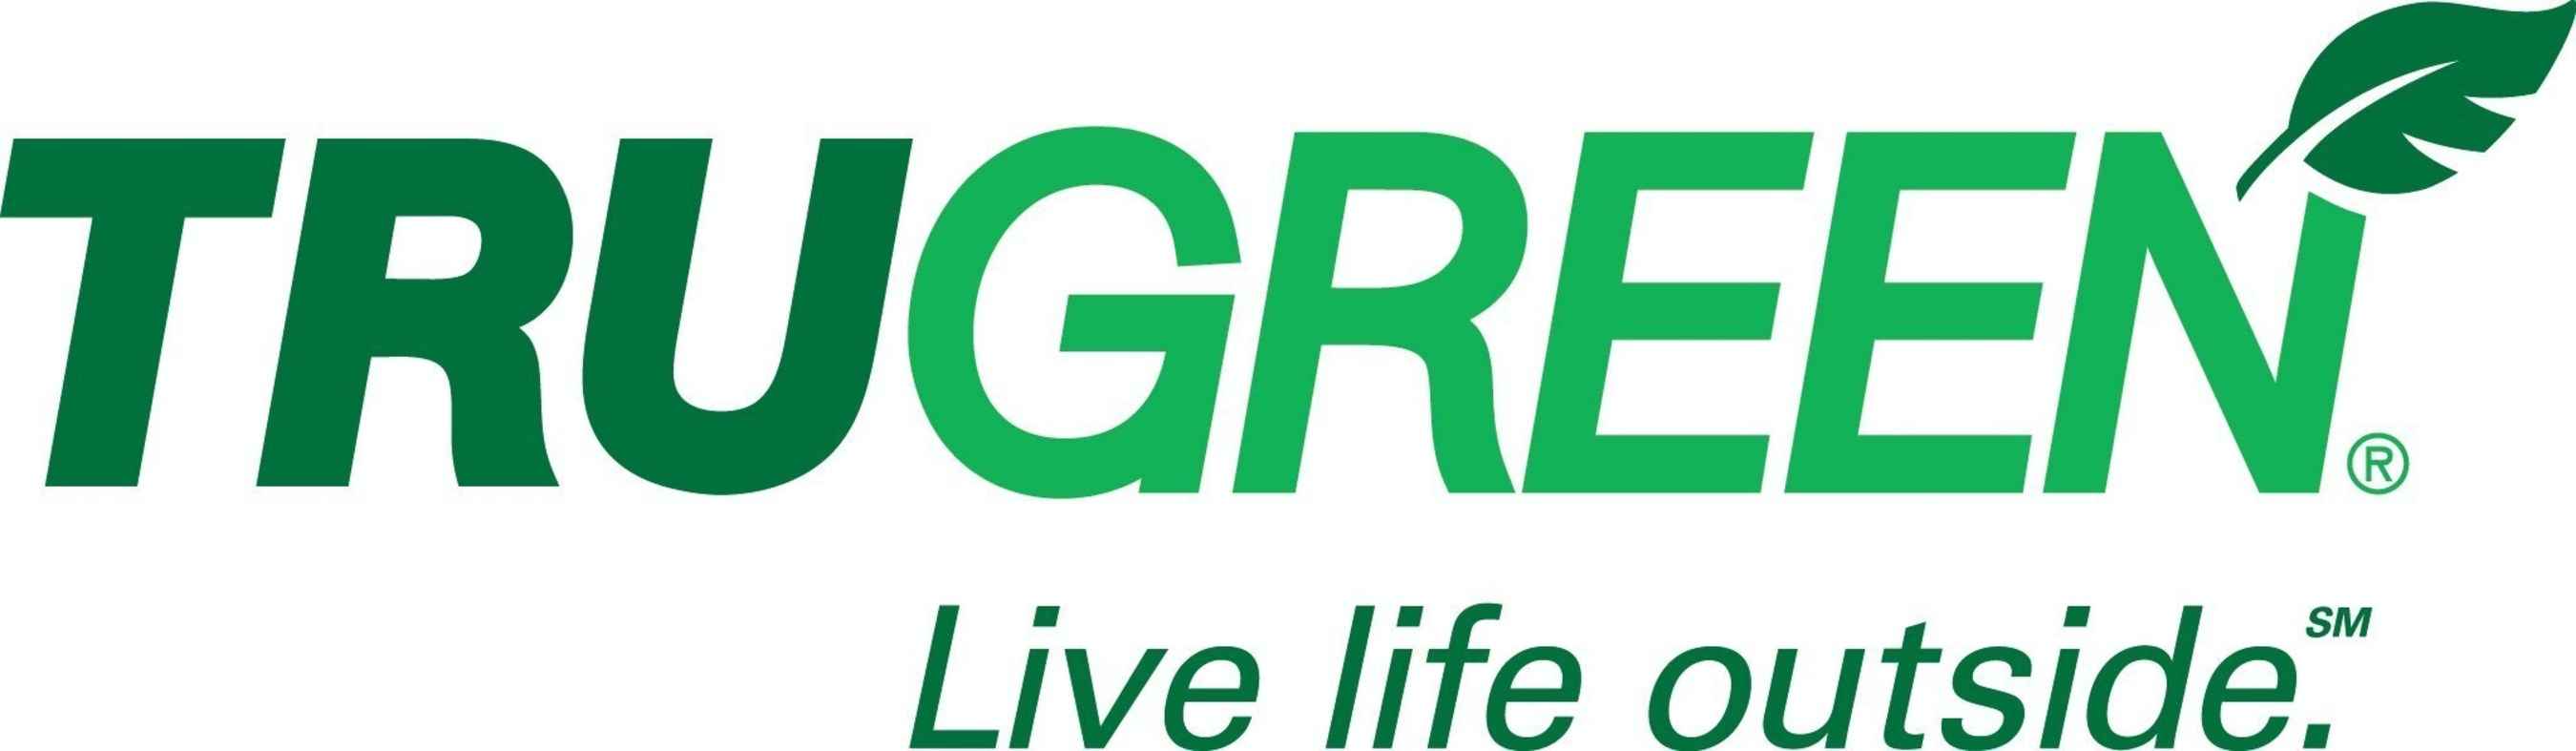 TruGreen and Scotts LawnService Close Merger